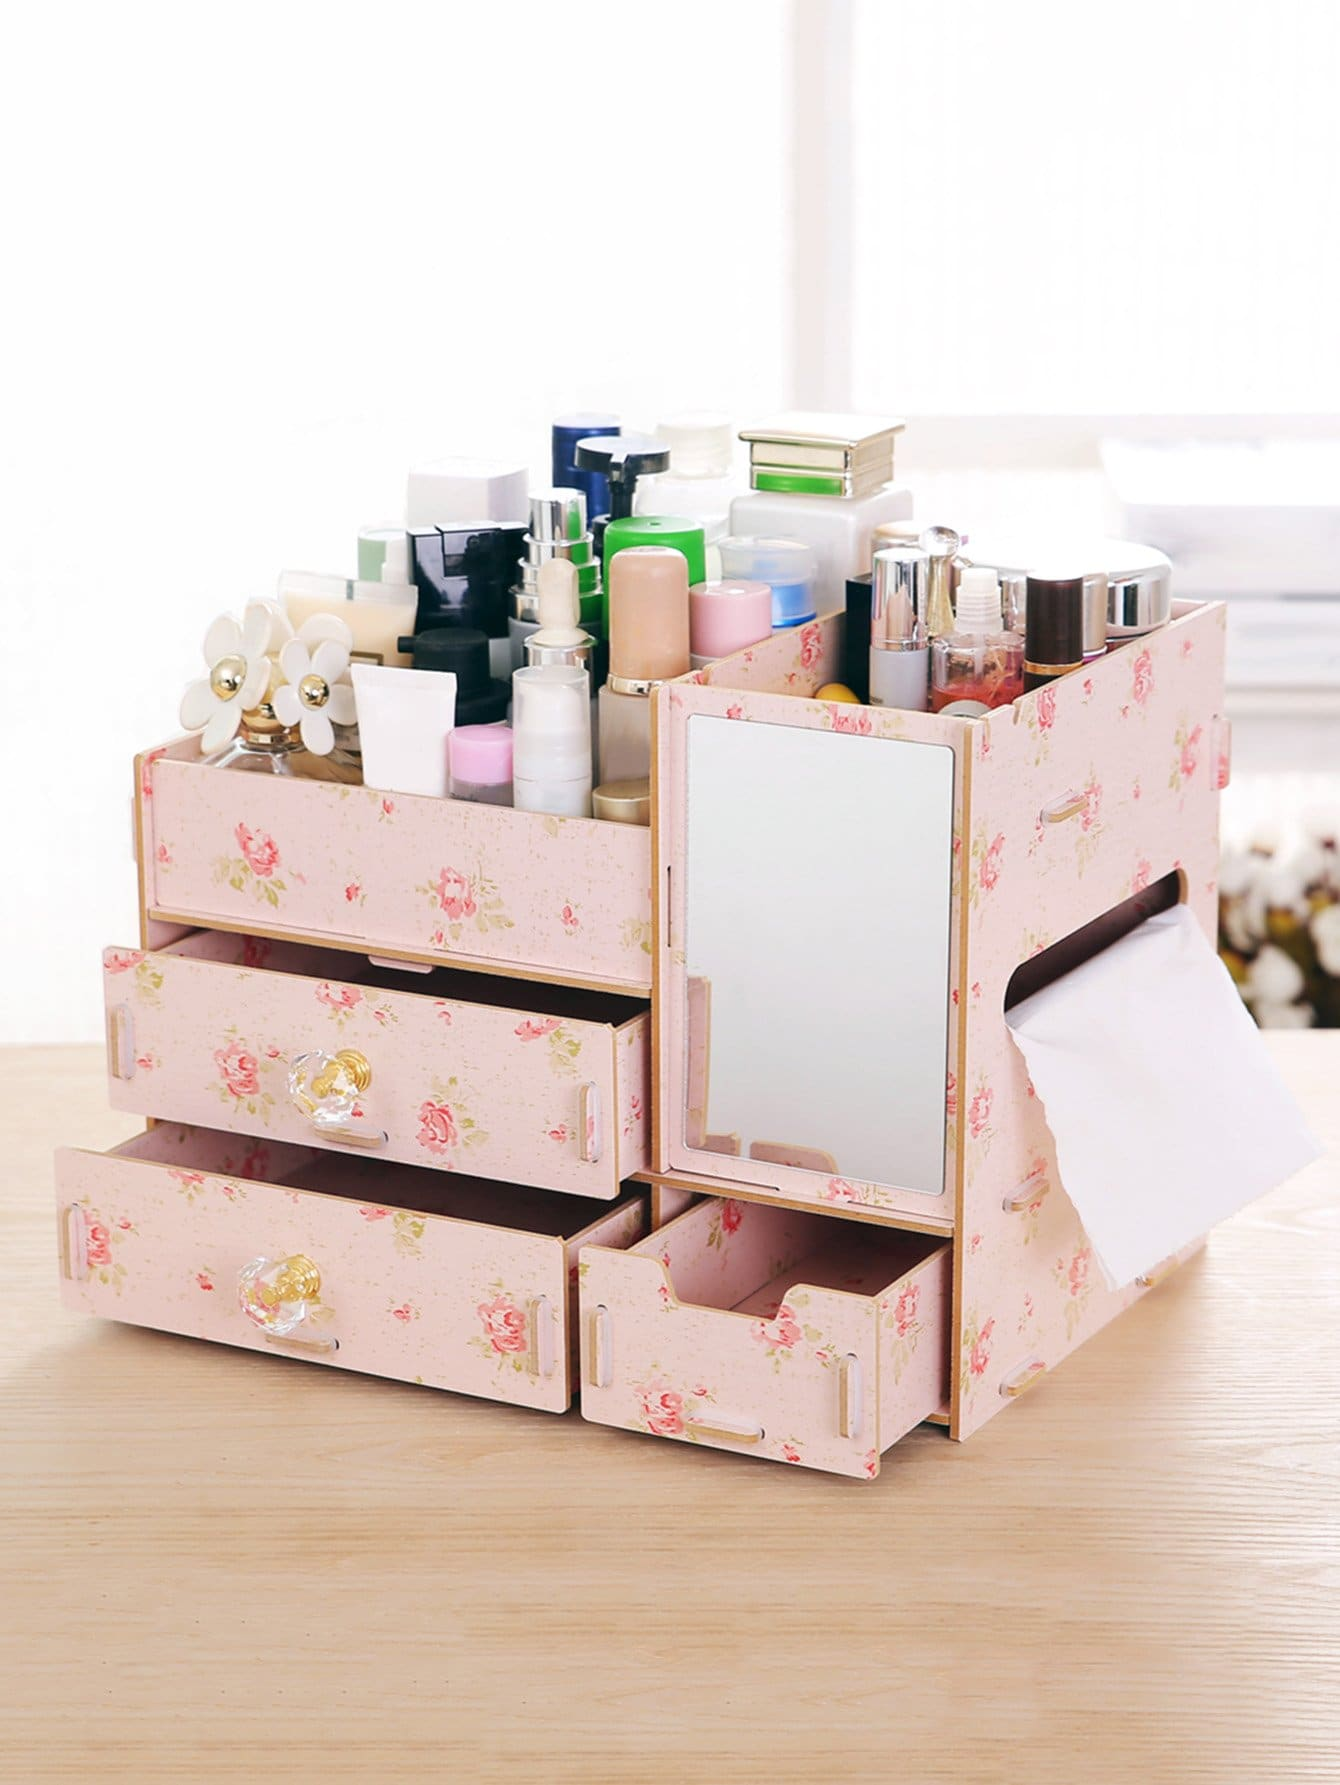 Floral Layered Drawer Desk Organizer With Mirror kitcox01761easaf3274bl value kit safco one drawer hospitality organizer saf3274bl and clorox disinfecting wipes cox01761ea